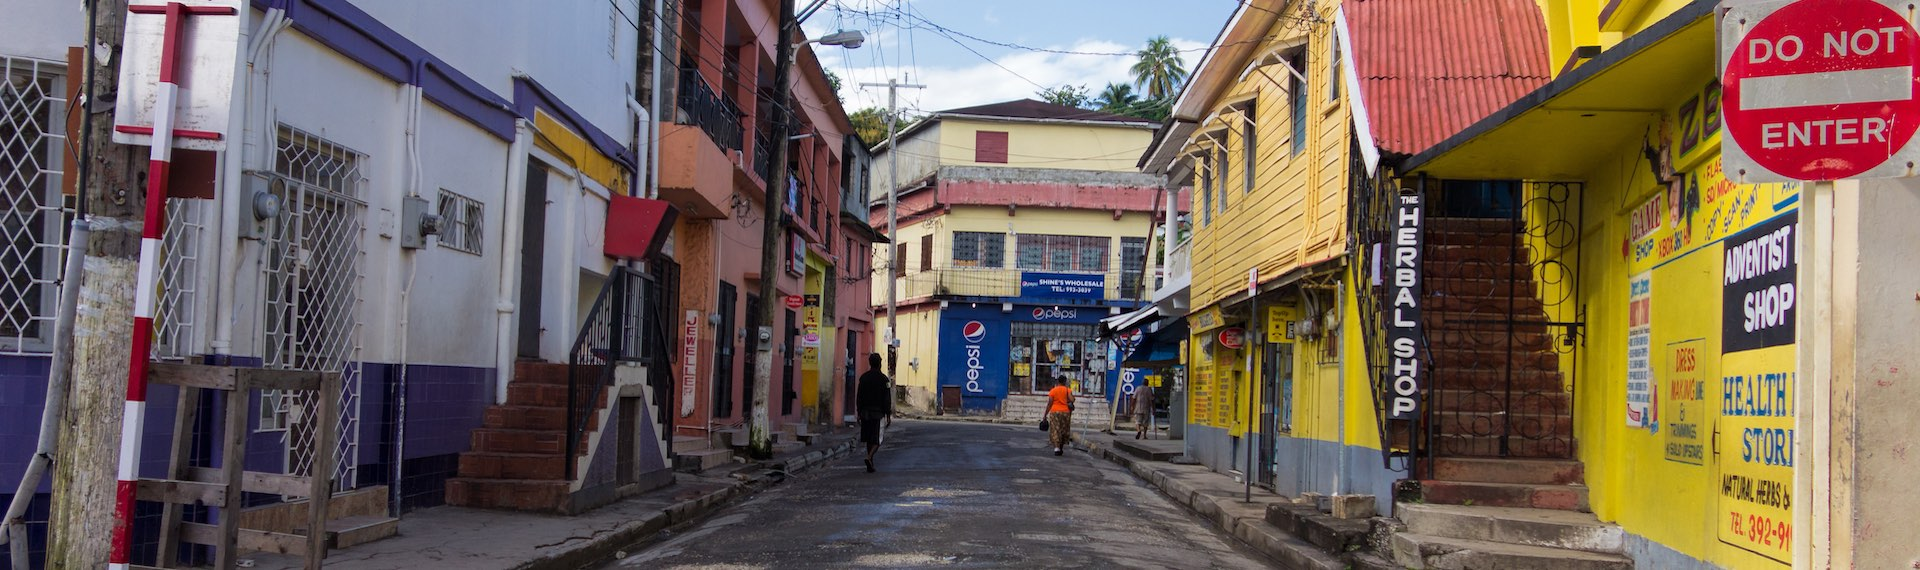 Typical Jamaican street with its diversity of colors.